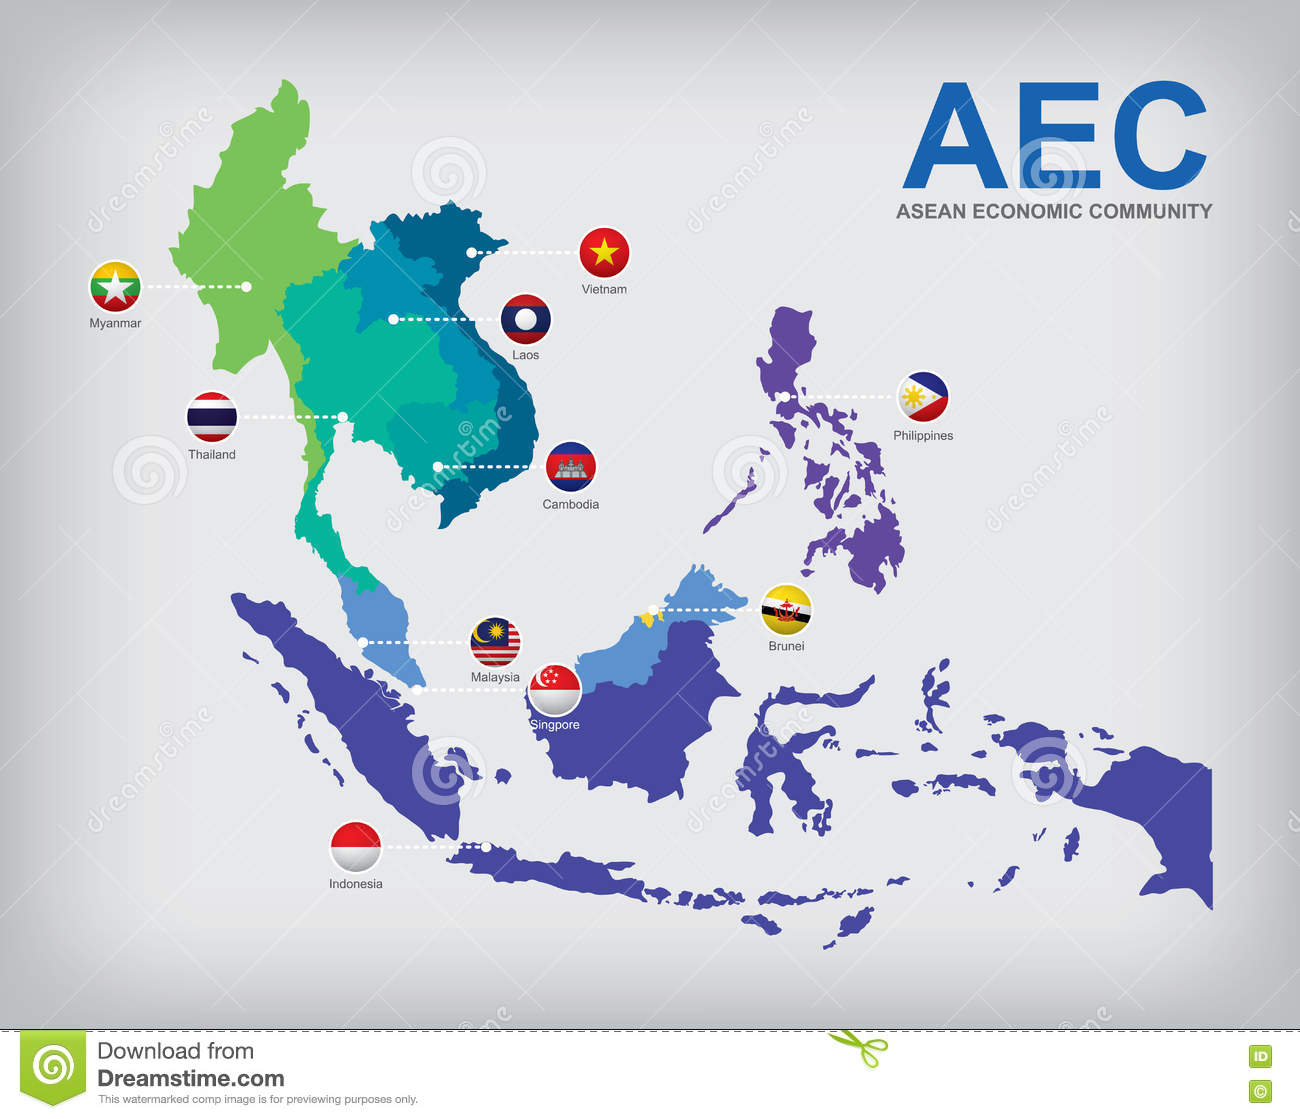 Figure ASEAN economic community at a glance